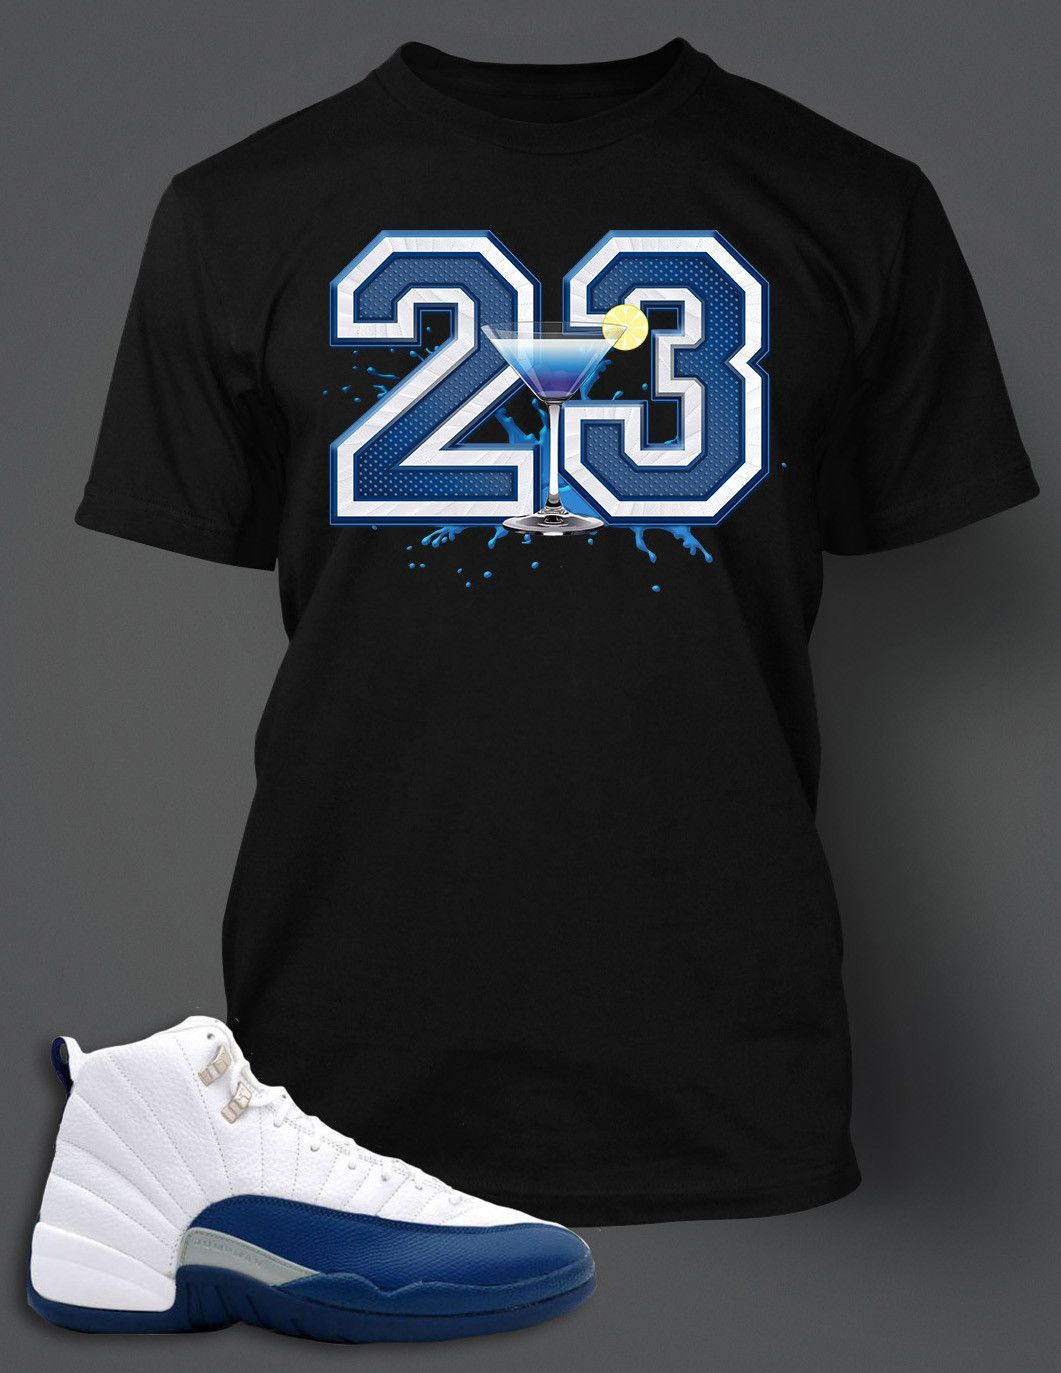 98da9376b37108 T Shirt To Match Retro Air Jordan 12 Shoe French Blue Custom Tee